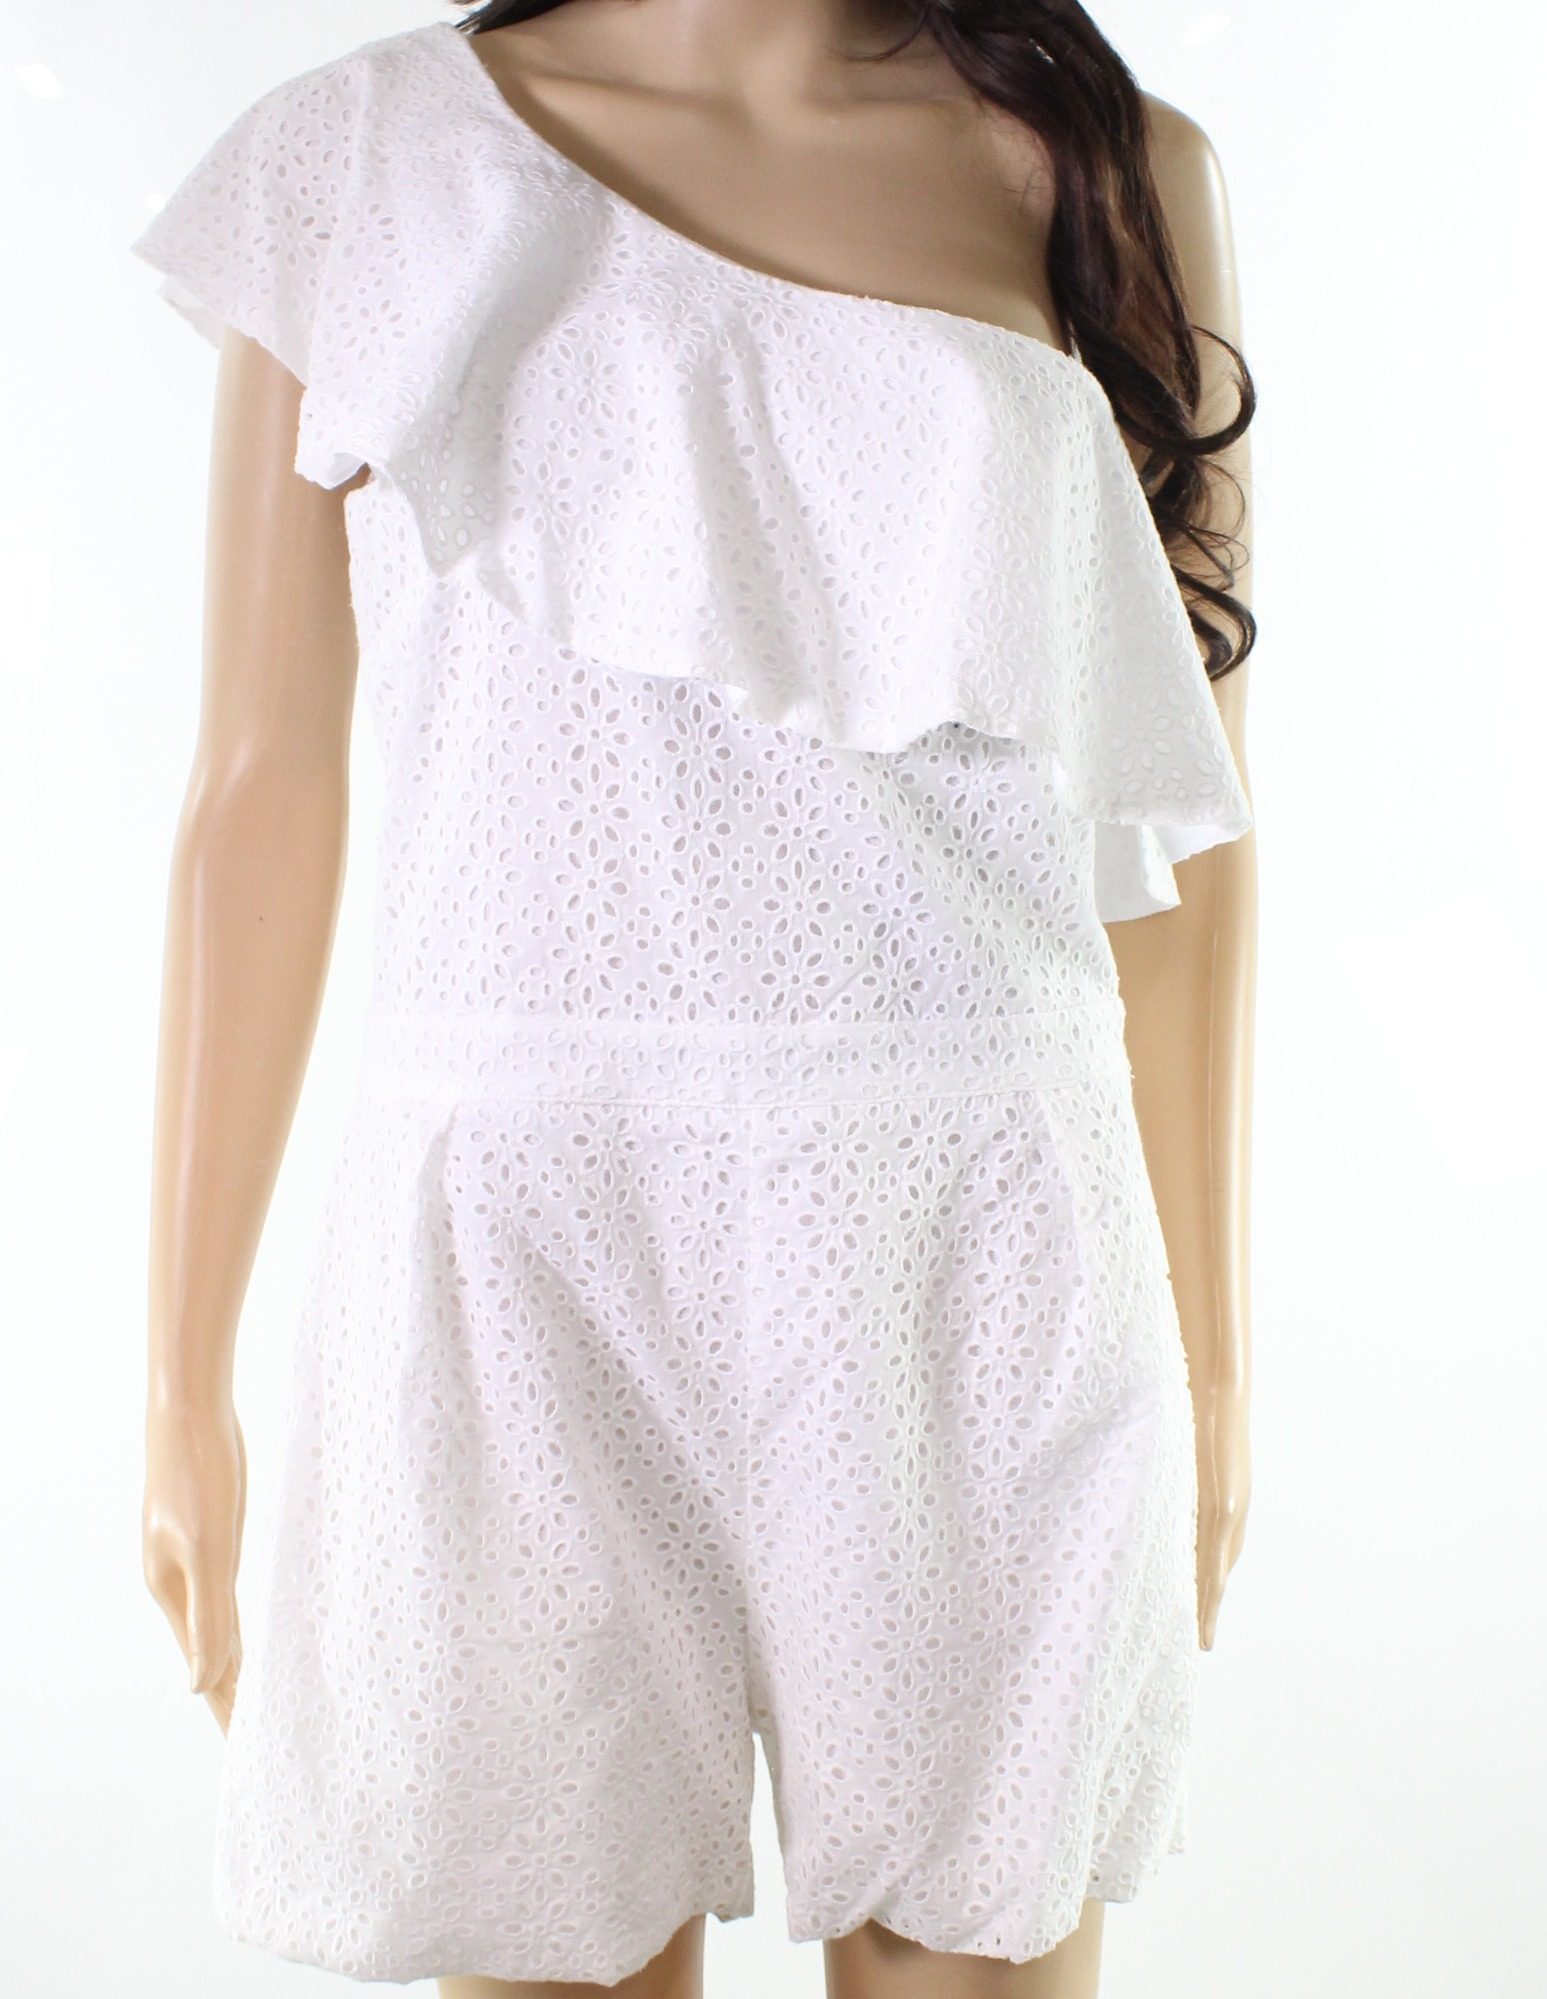 bafd1831eb9 Picture 1 of 3  Picture 2 of 3  Picture 3 of 3. Design Lab NEW White Womens  USA Size Medium M Eyelet One-Shoulder Romper ...